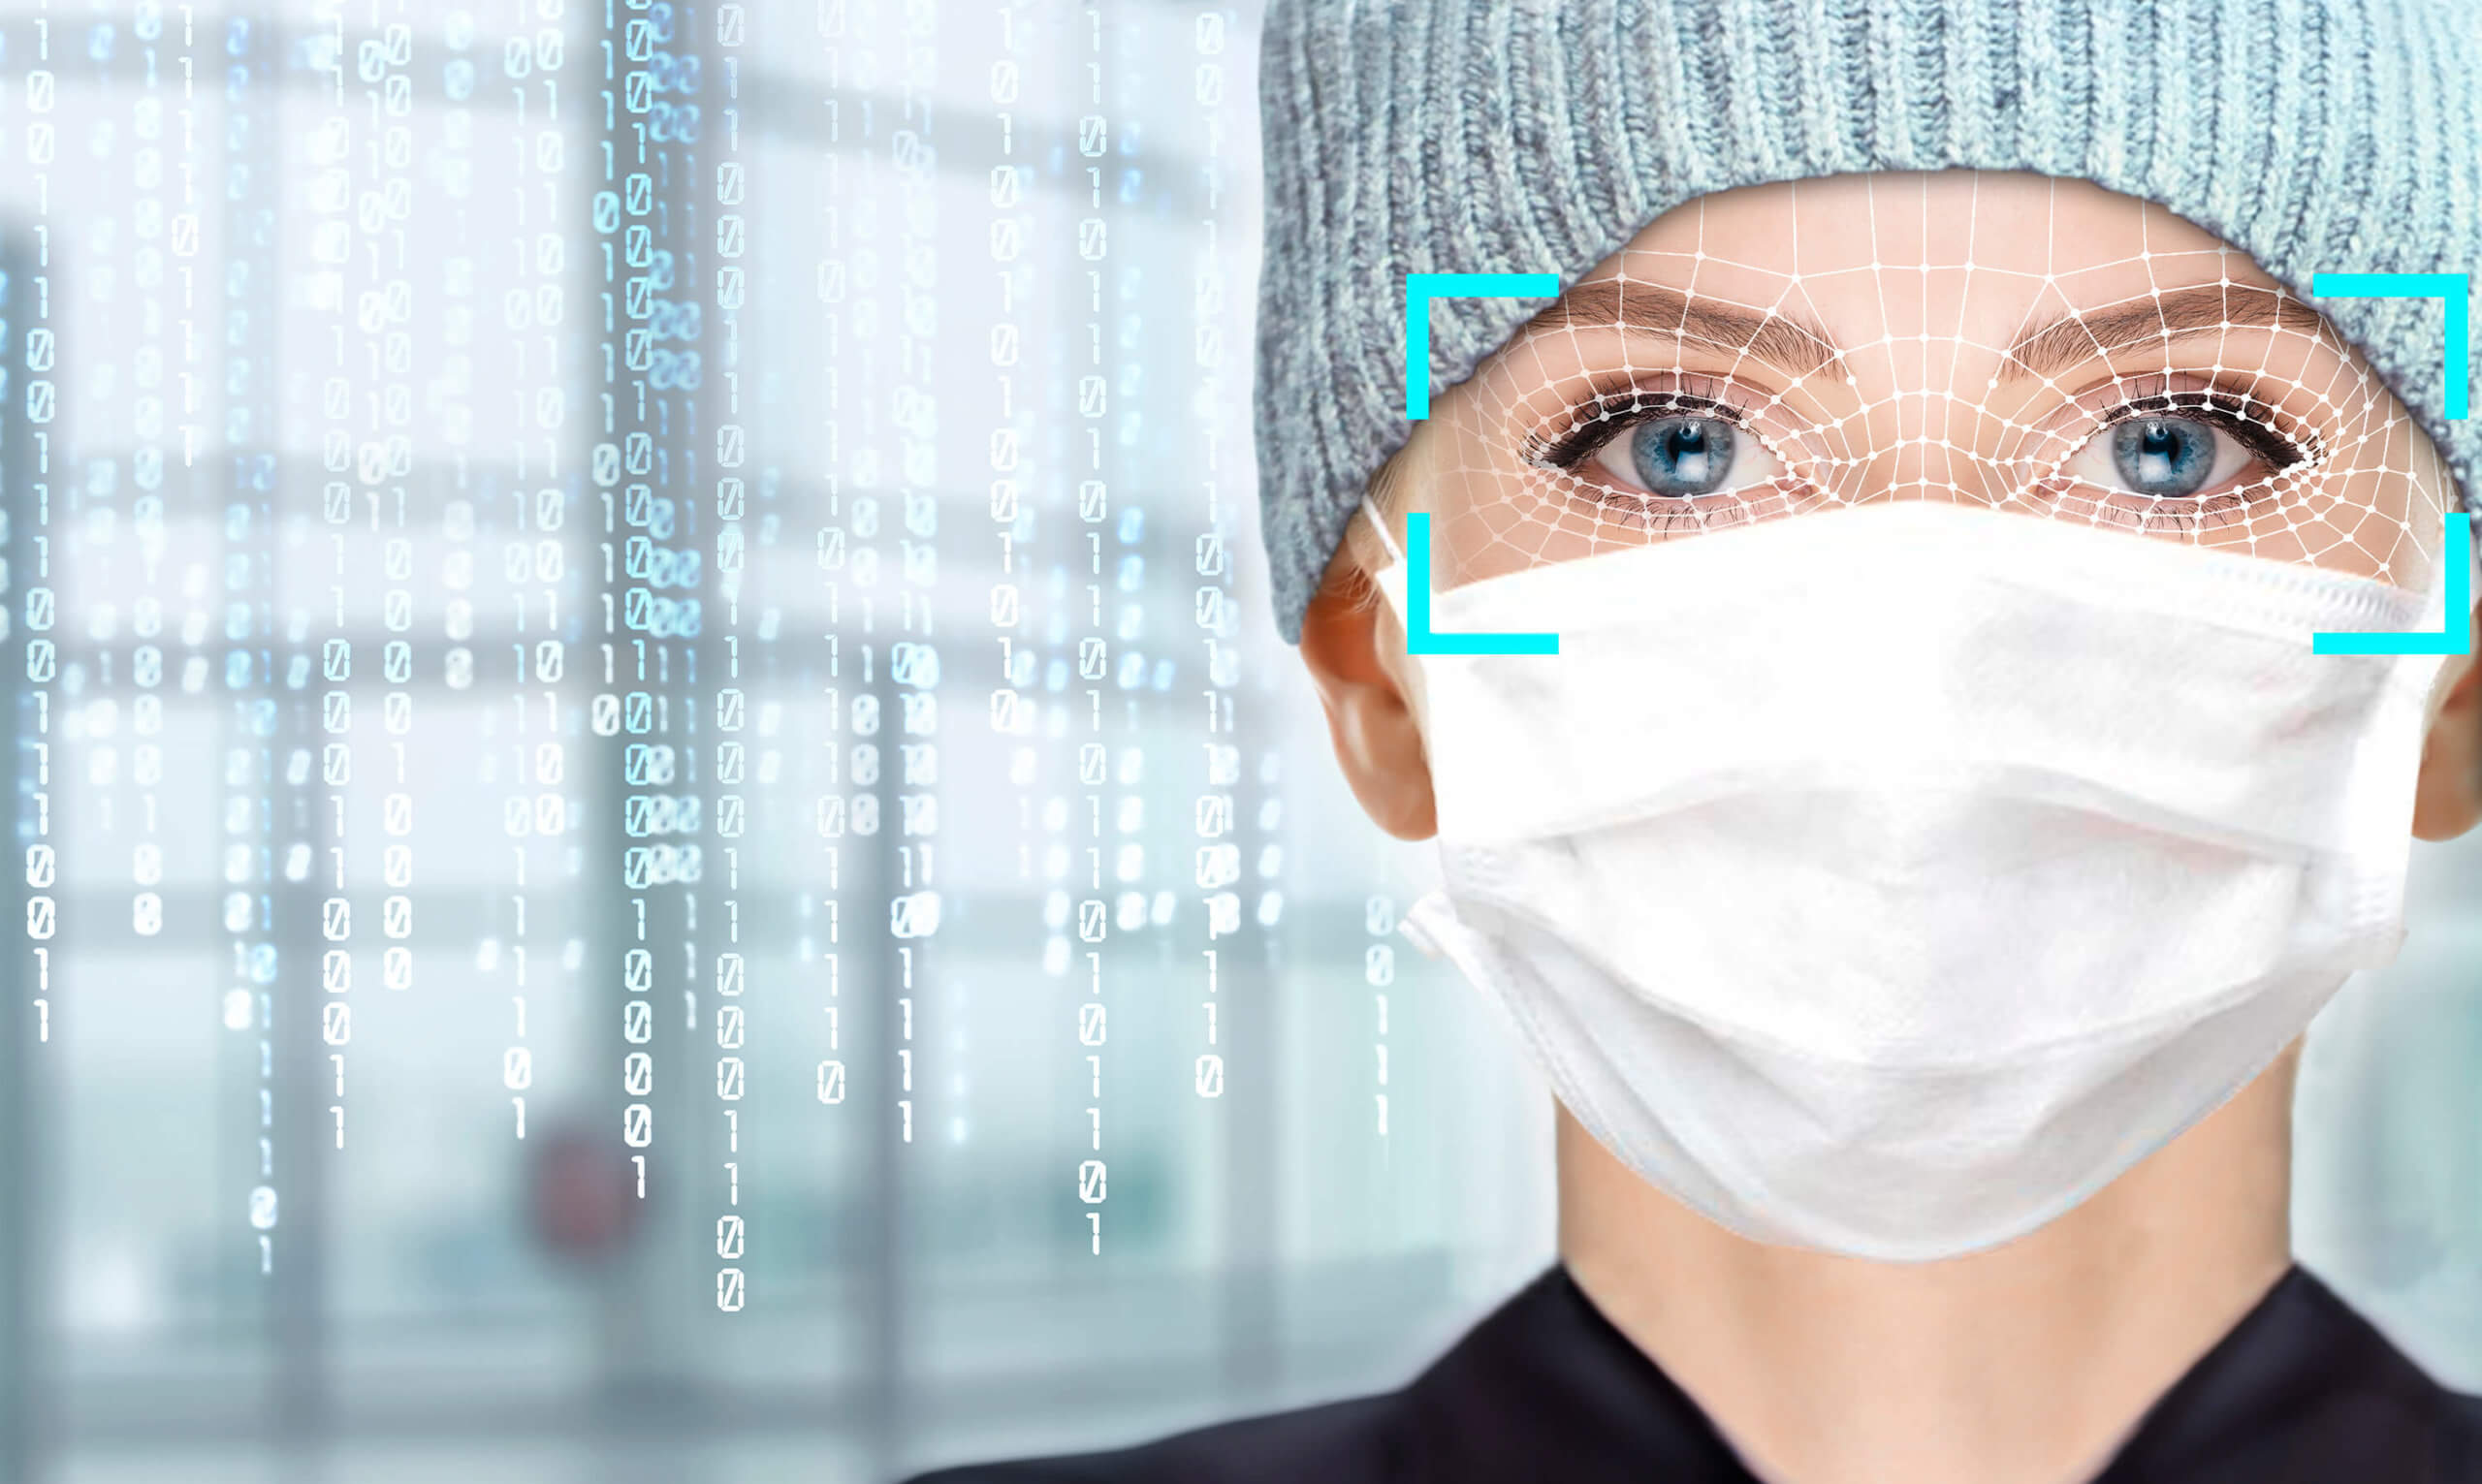 ActiveMatch provides facial recognition technology to address COVID-19 pandemic challenges and protect people from the coronavirus